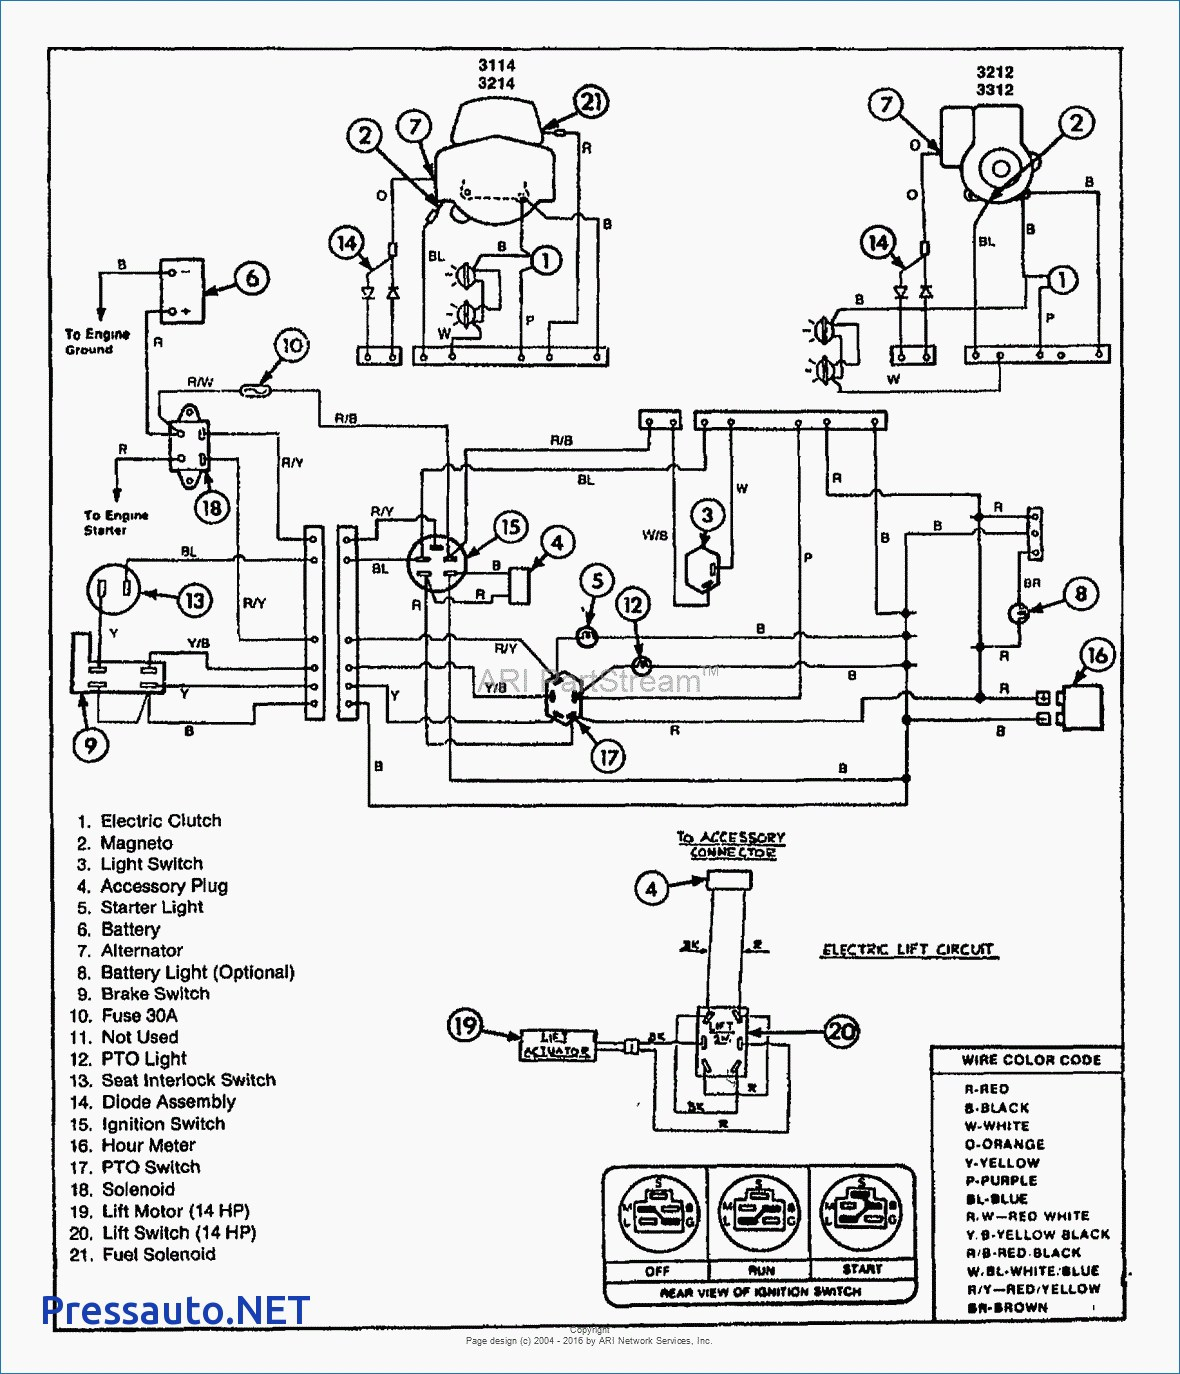 Wiring Diagram 2 Gang Outlet Also Electrical Outlet Wiring Diagram